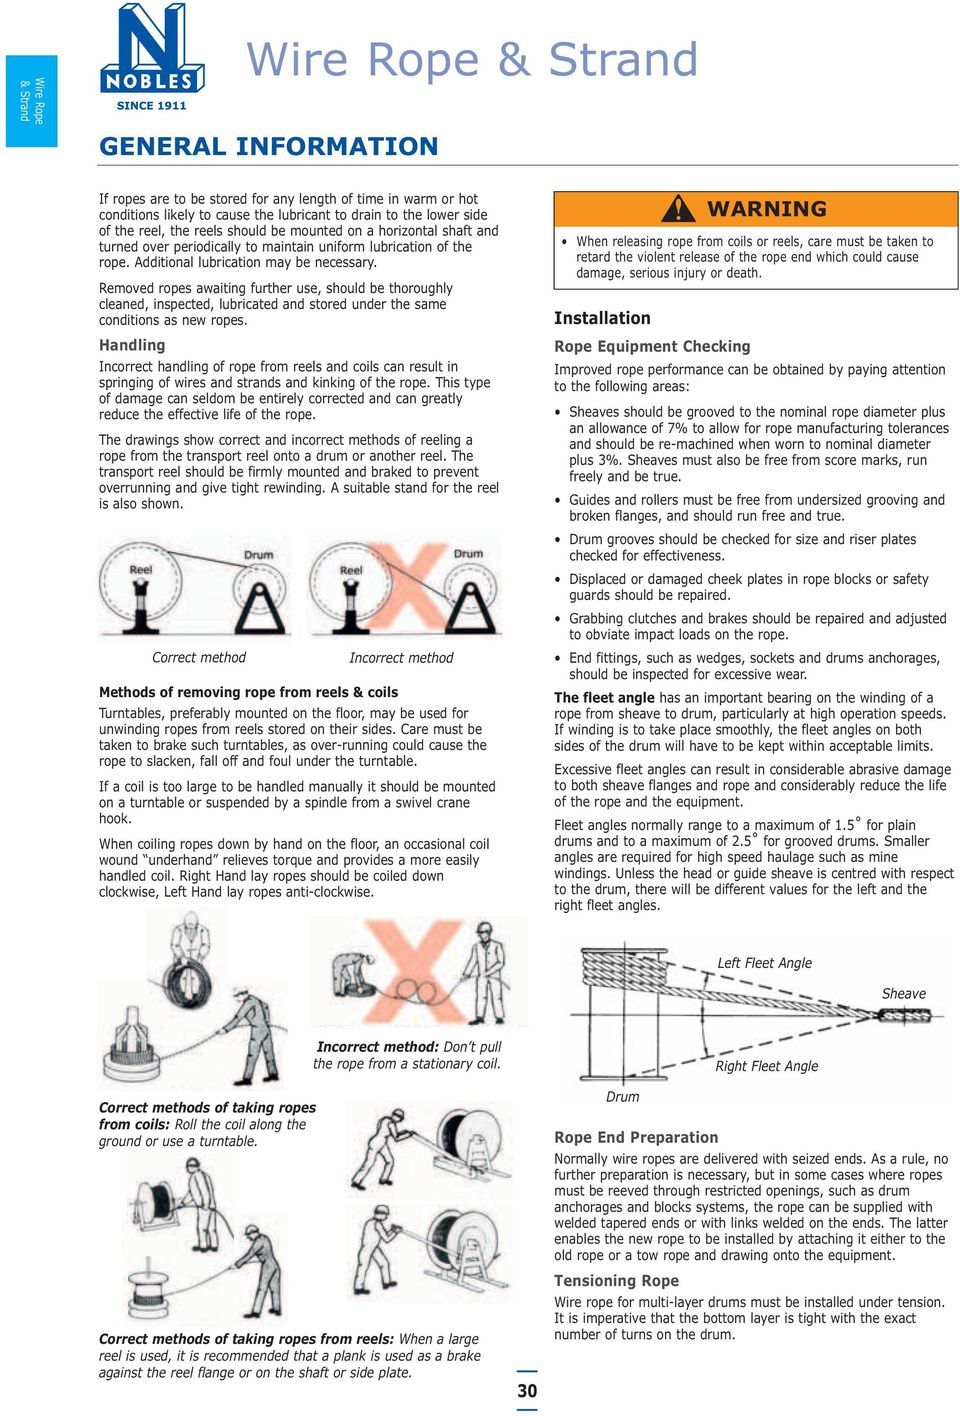 Charming Crane Wire Rope Replacement Gm Fuse Box Diagram 2001 ...